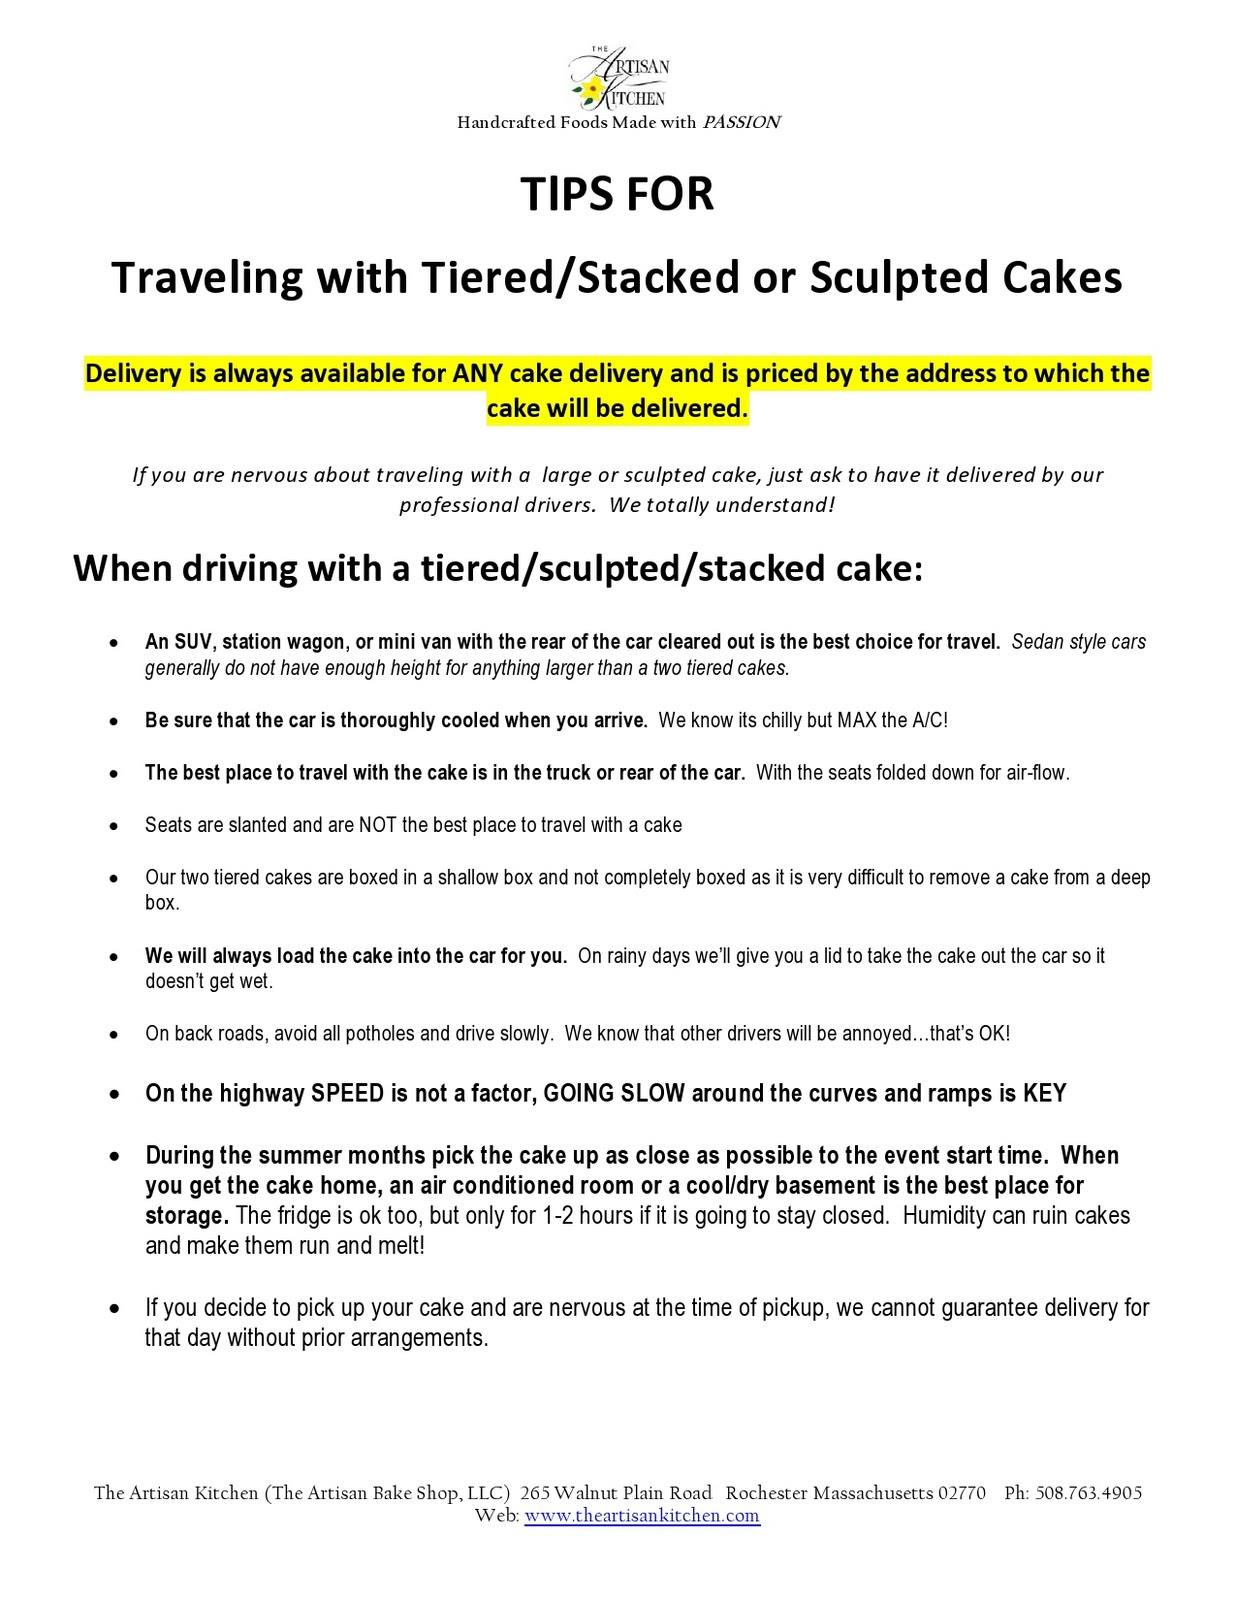 wedding cakes in a car